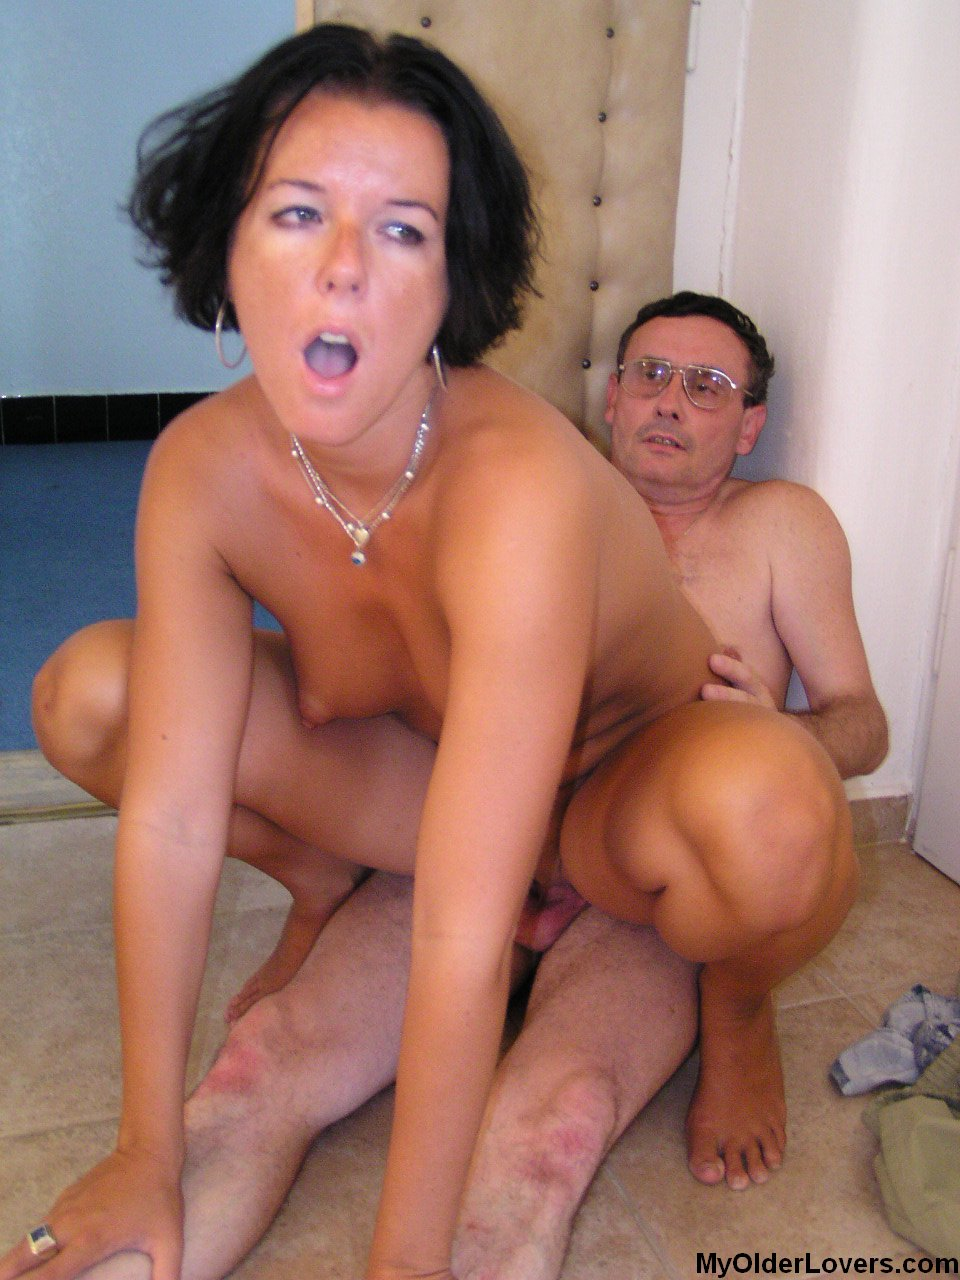 Older man fucks sweet girl.